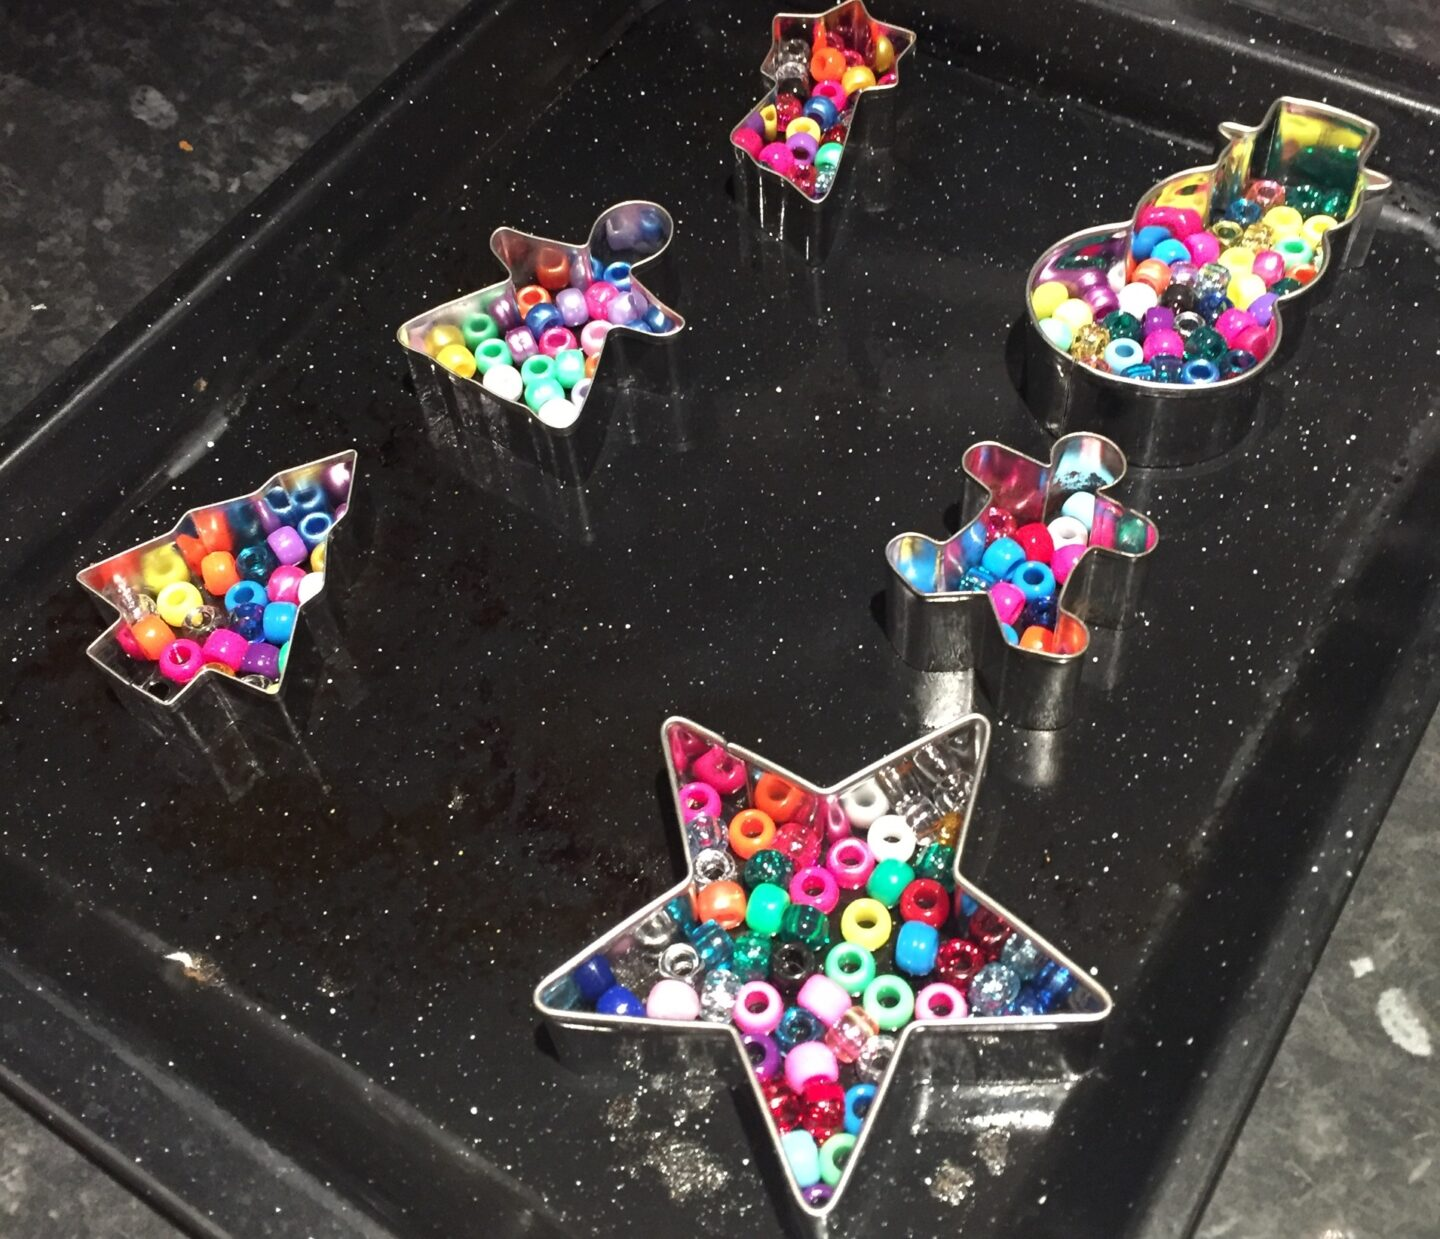 Melted bead ornaments ready to go in the oven